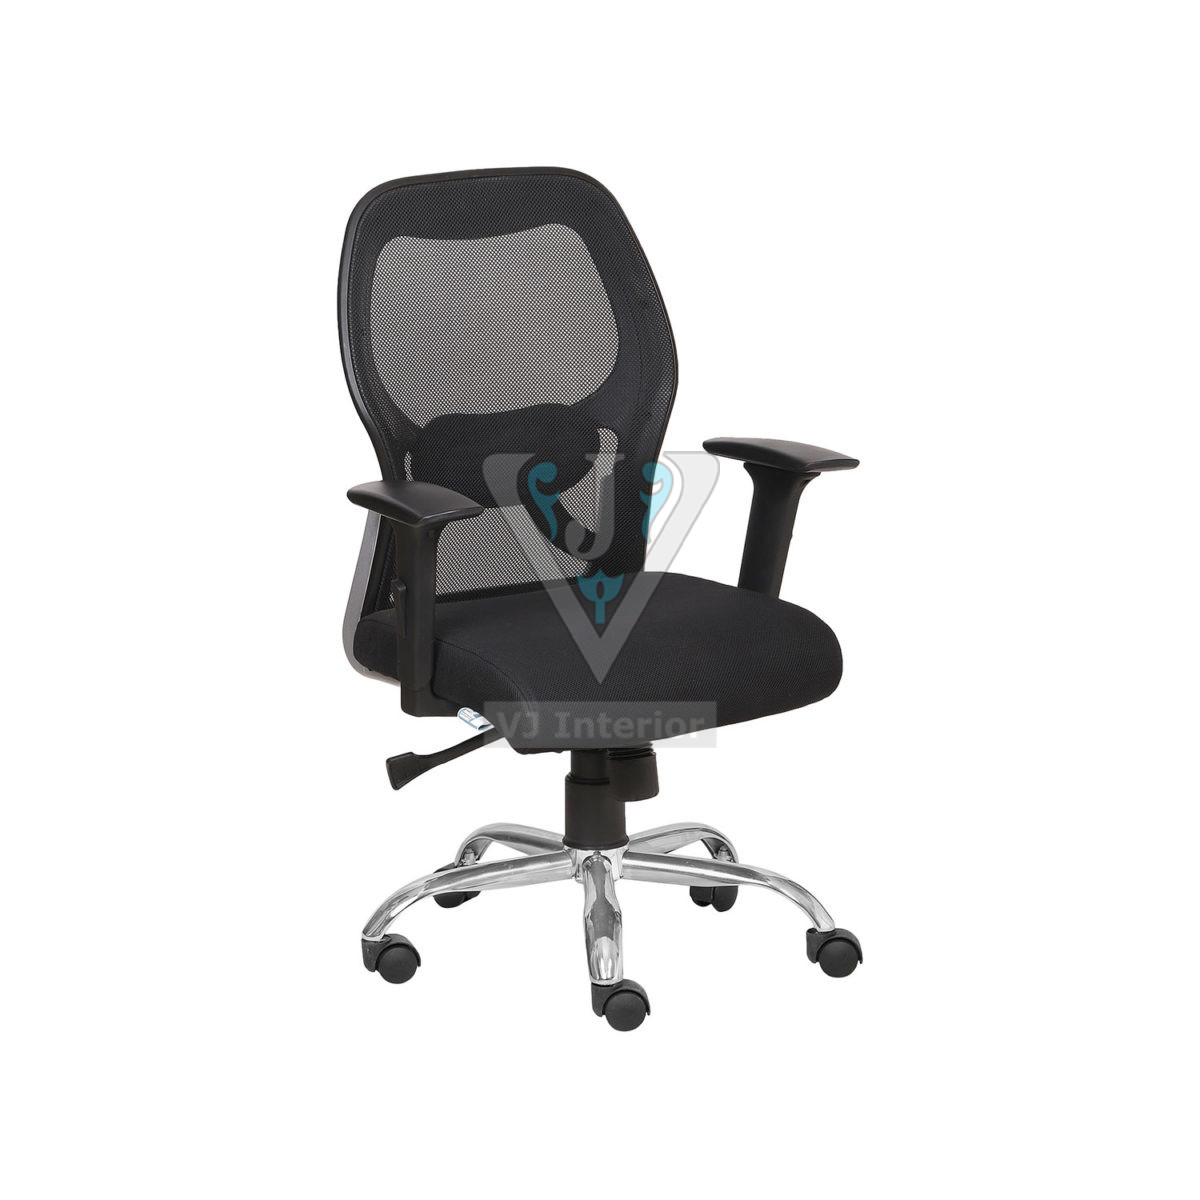 Chrome Wheelbase Mesh Executive Chair In Black Color